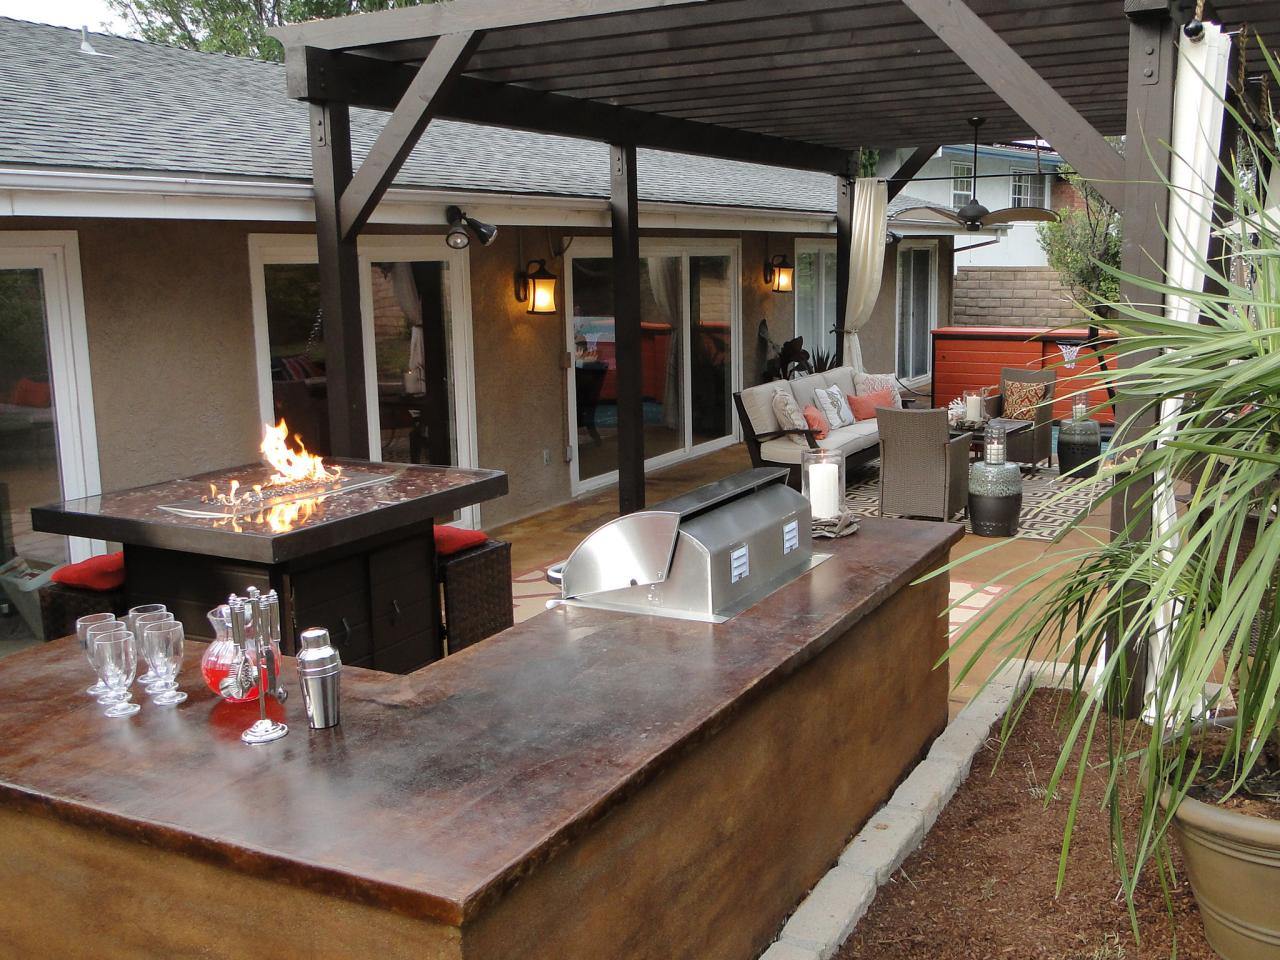 Patio Bar Design Ideas for Your Home